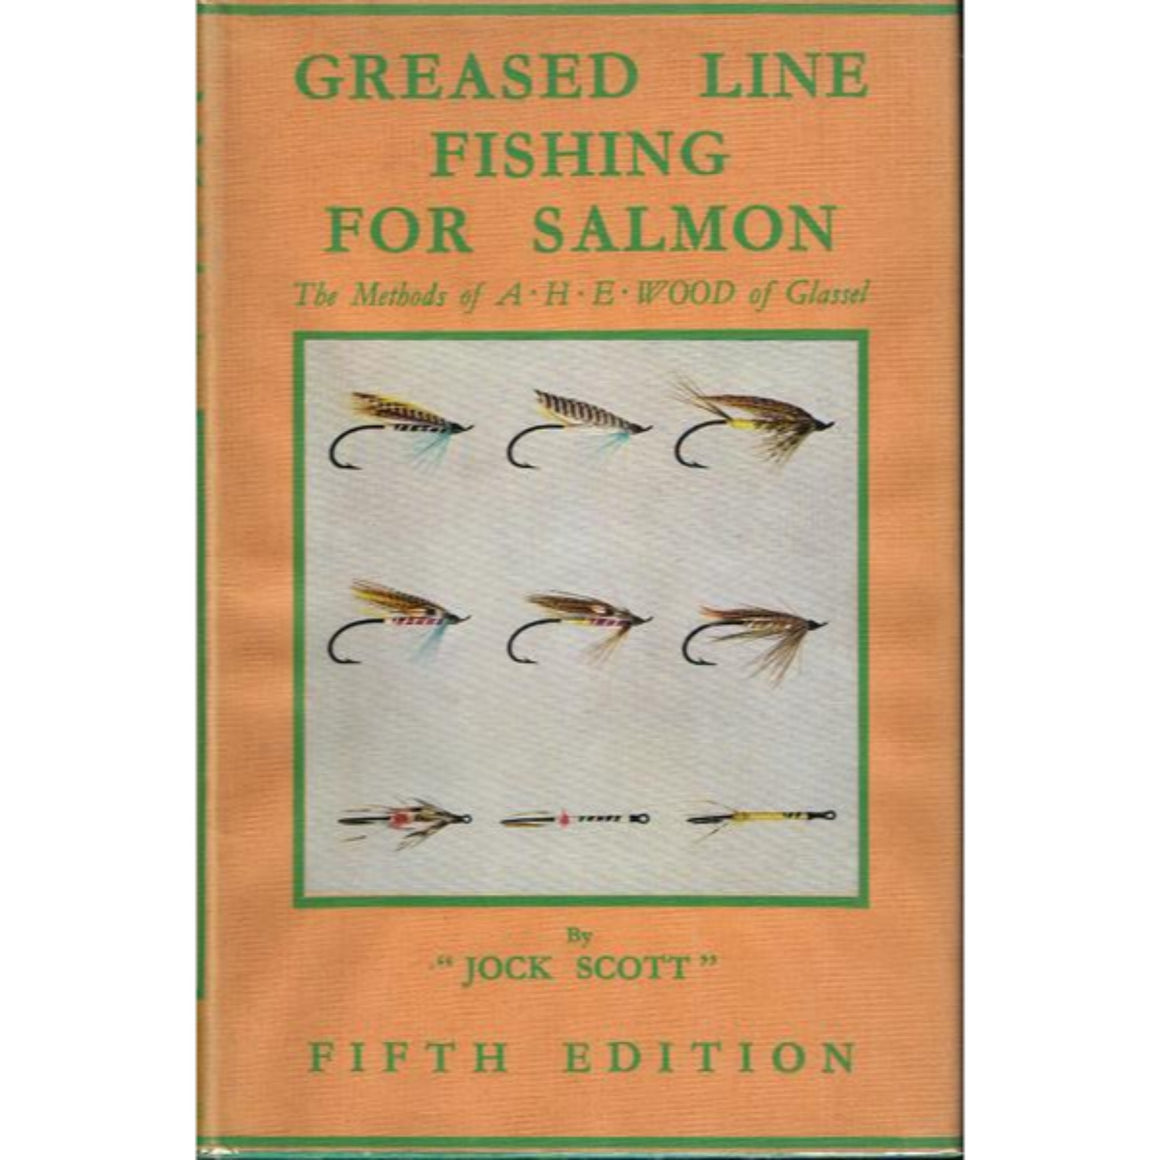 Greased Line Fishing For Salmon